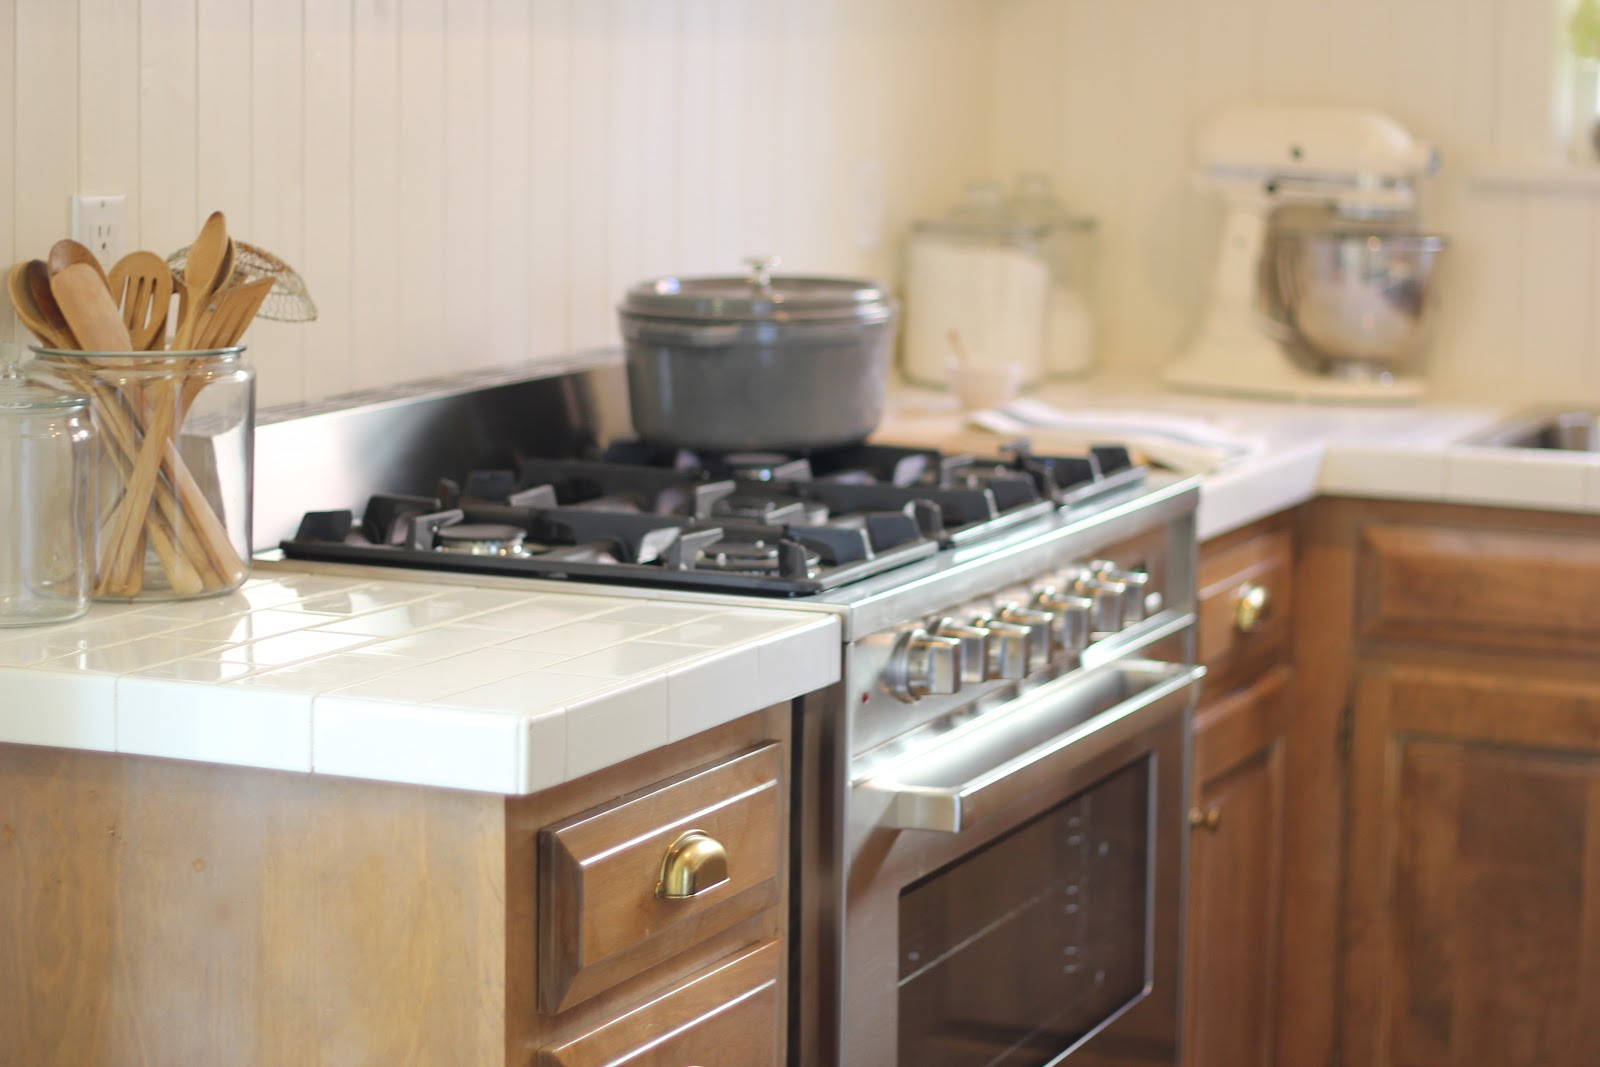 Best ideas about DIY Kitchen Tiling . Save or Pin Jenny Steffens Hobick DIY Kitchen Remodel Now.